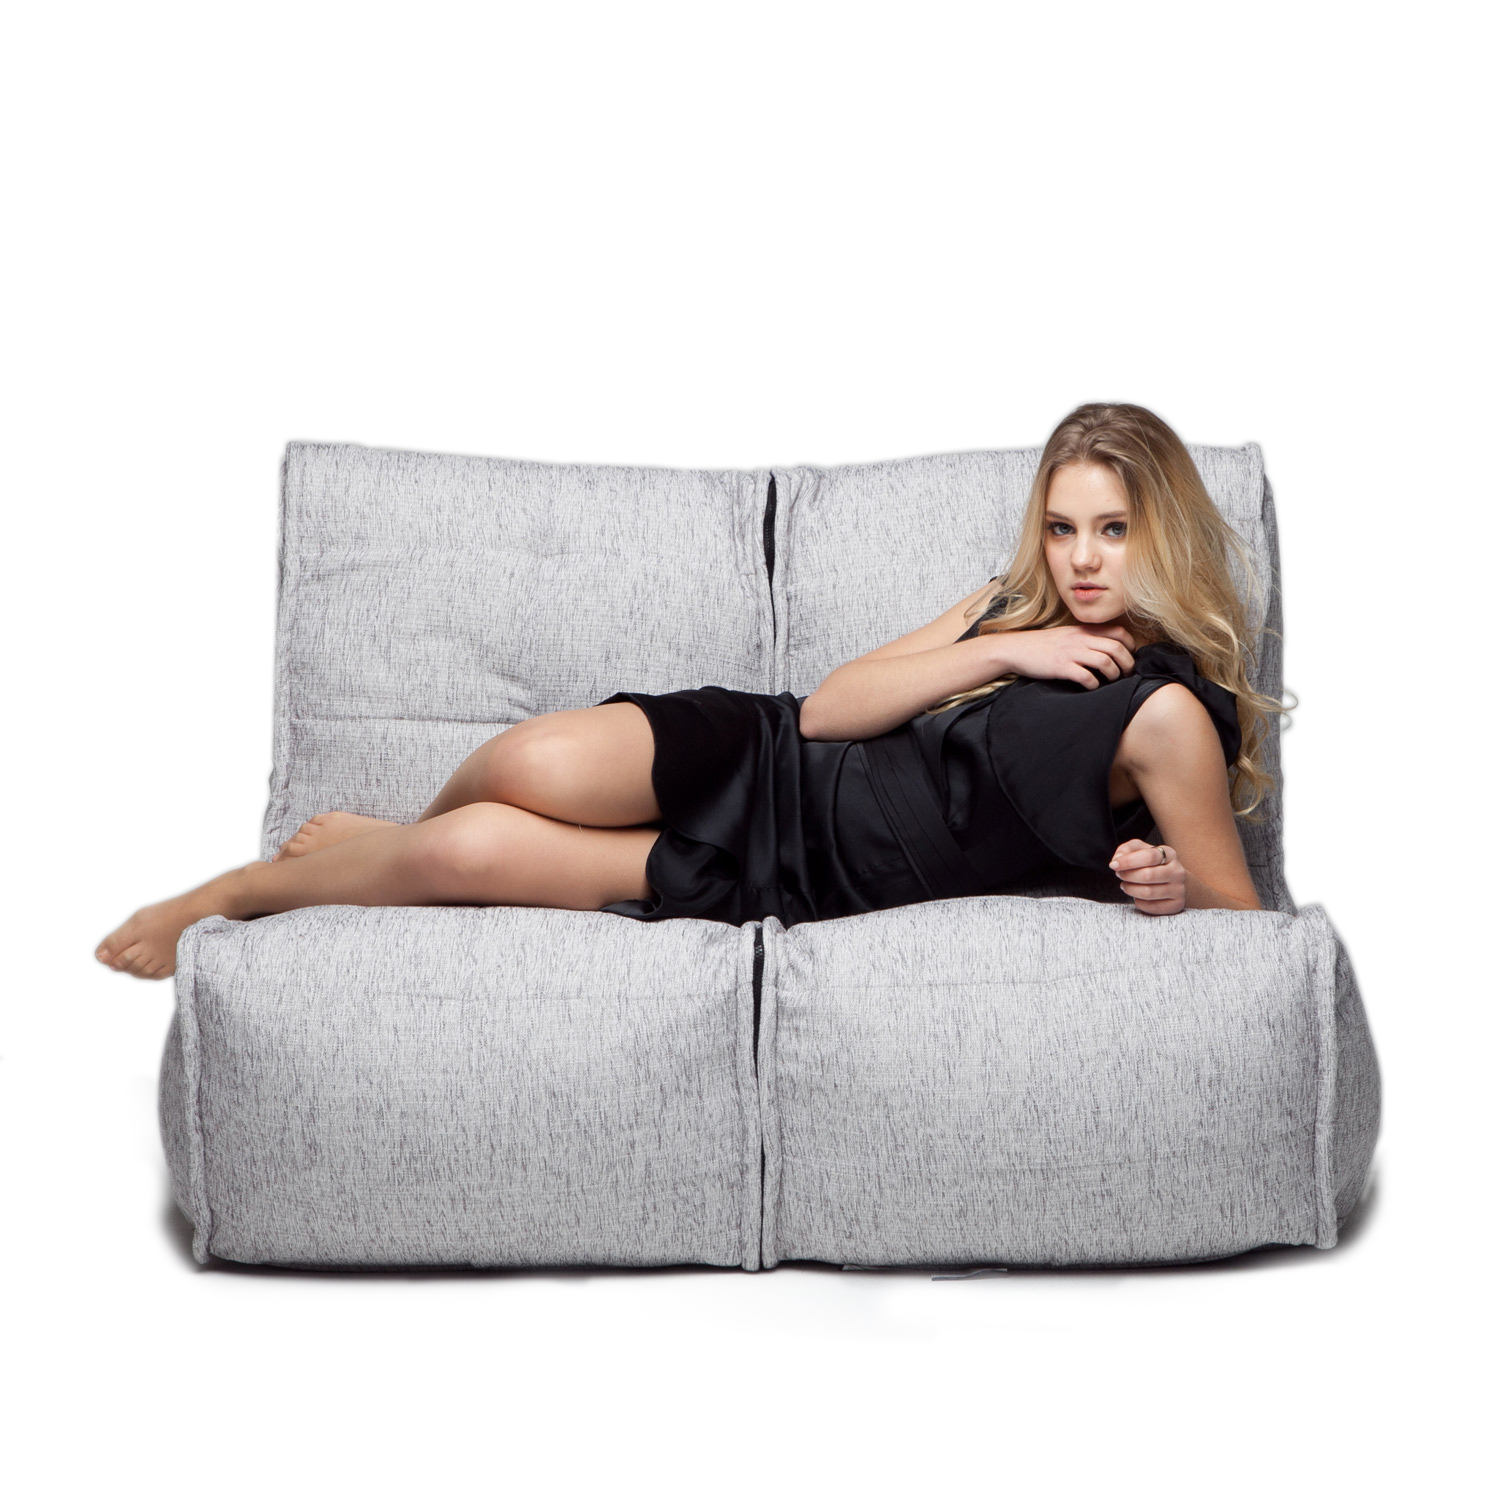 2 Seater Grey Sofa | Designer Bean Bag Couch | Grey Fabric Pertaining To Bean Bag Sofas And Chairs (Photo 10 of 15)